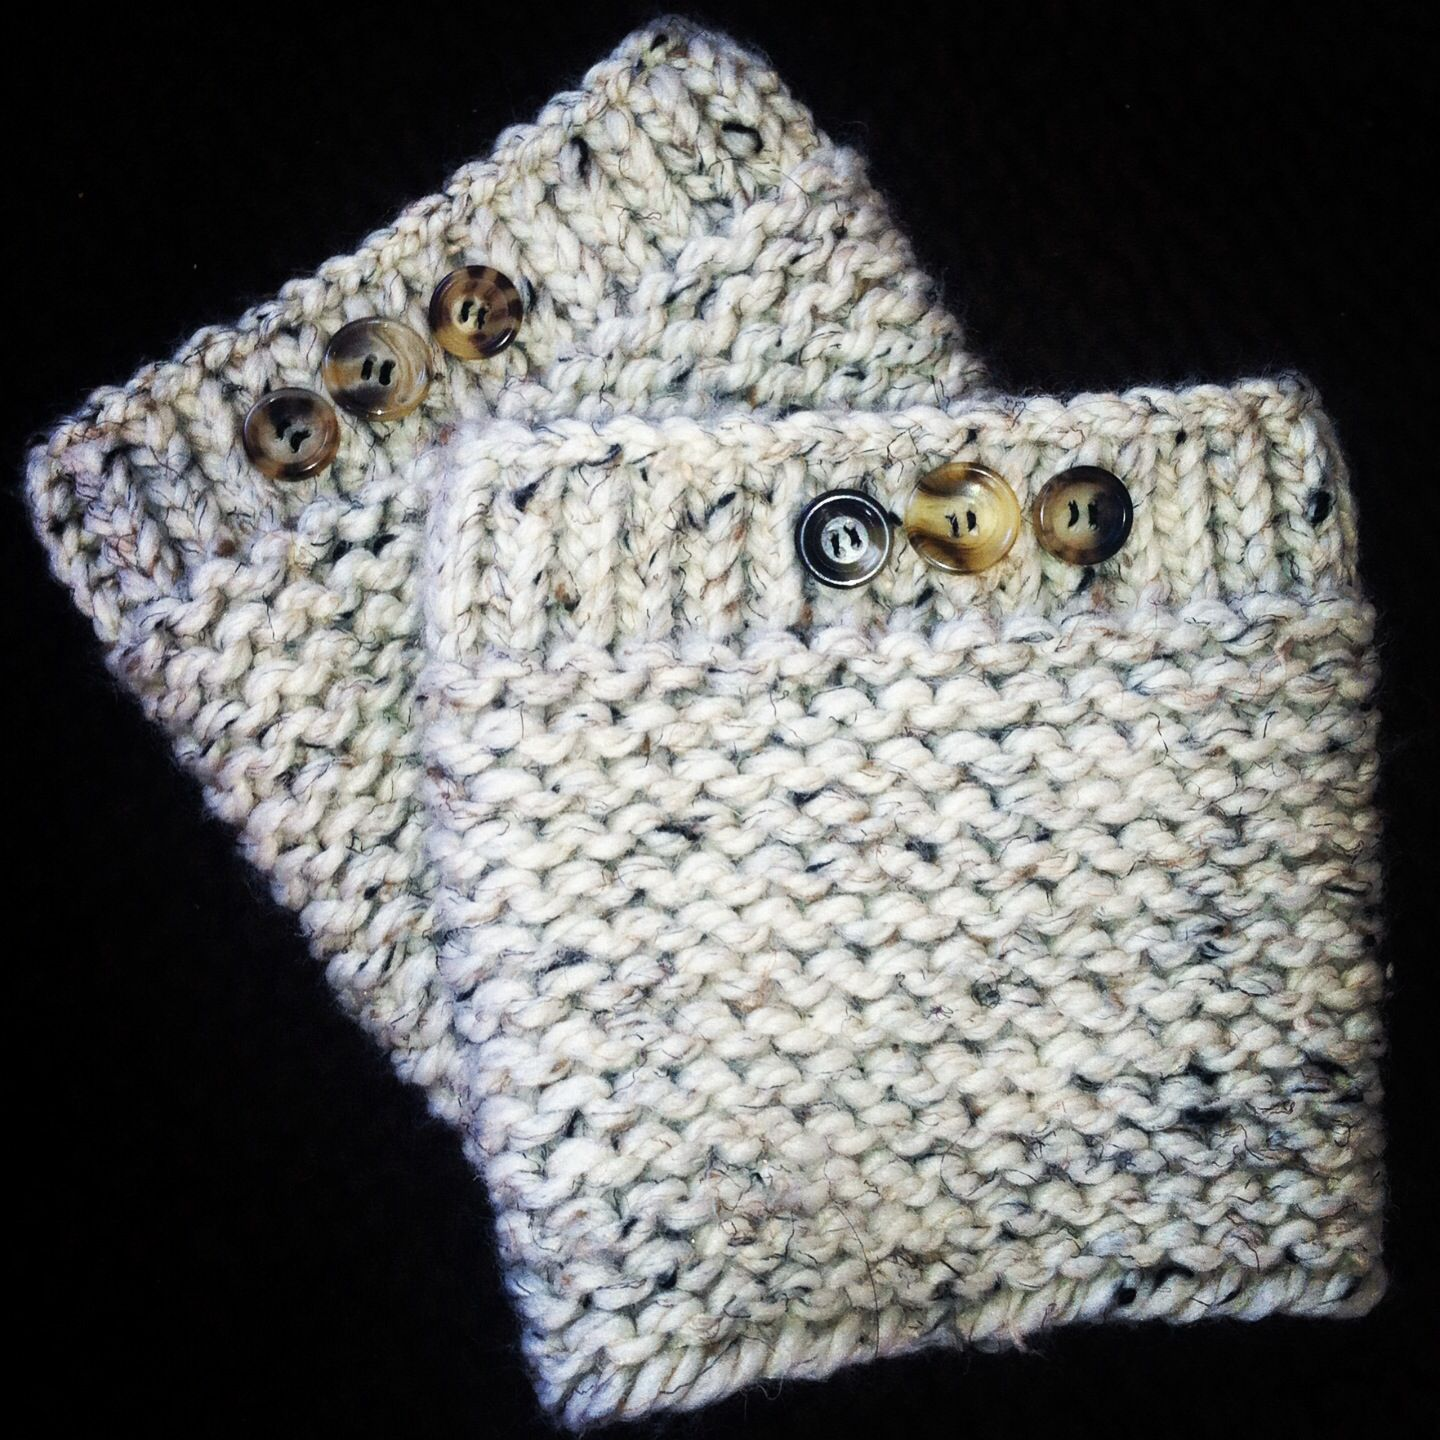 Loom knitting boot cuffs cream and brown tones with buttons loom knitting boot cuffs cream and brown tones with buttons bankloansurffo Gallery